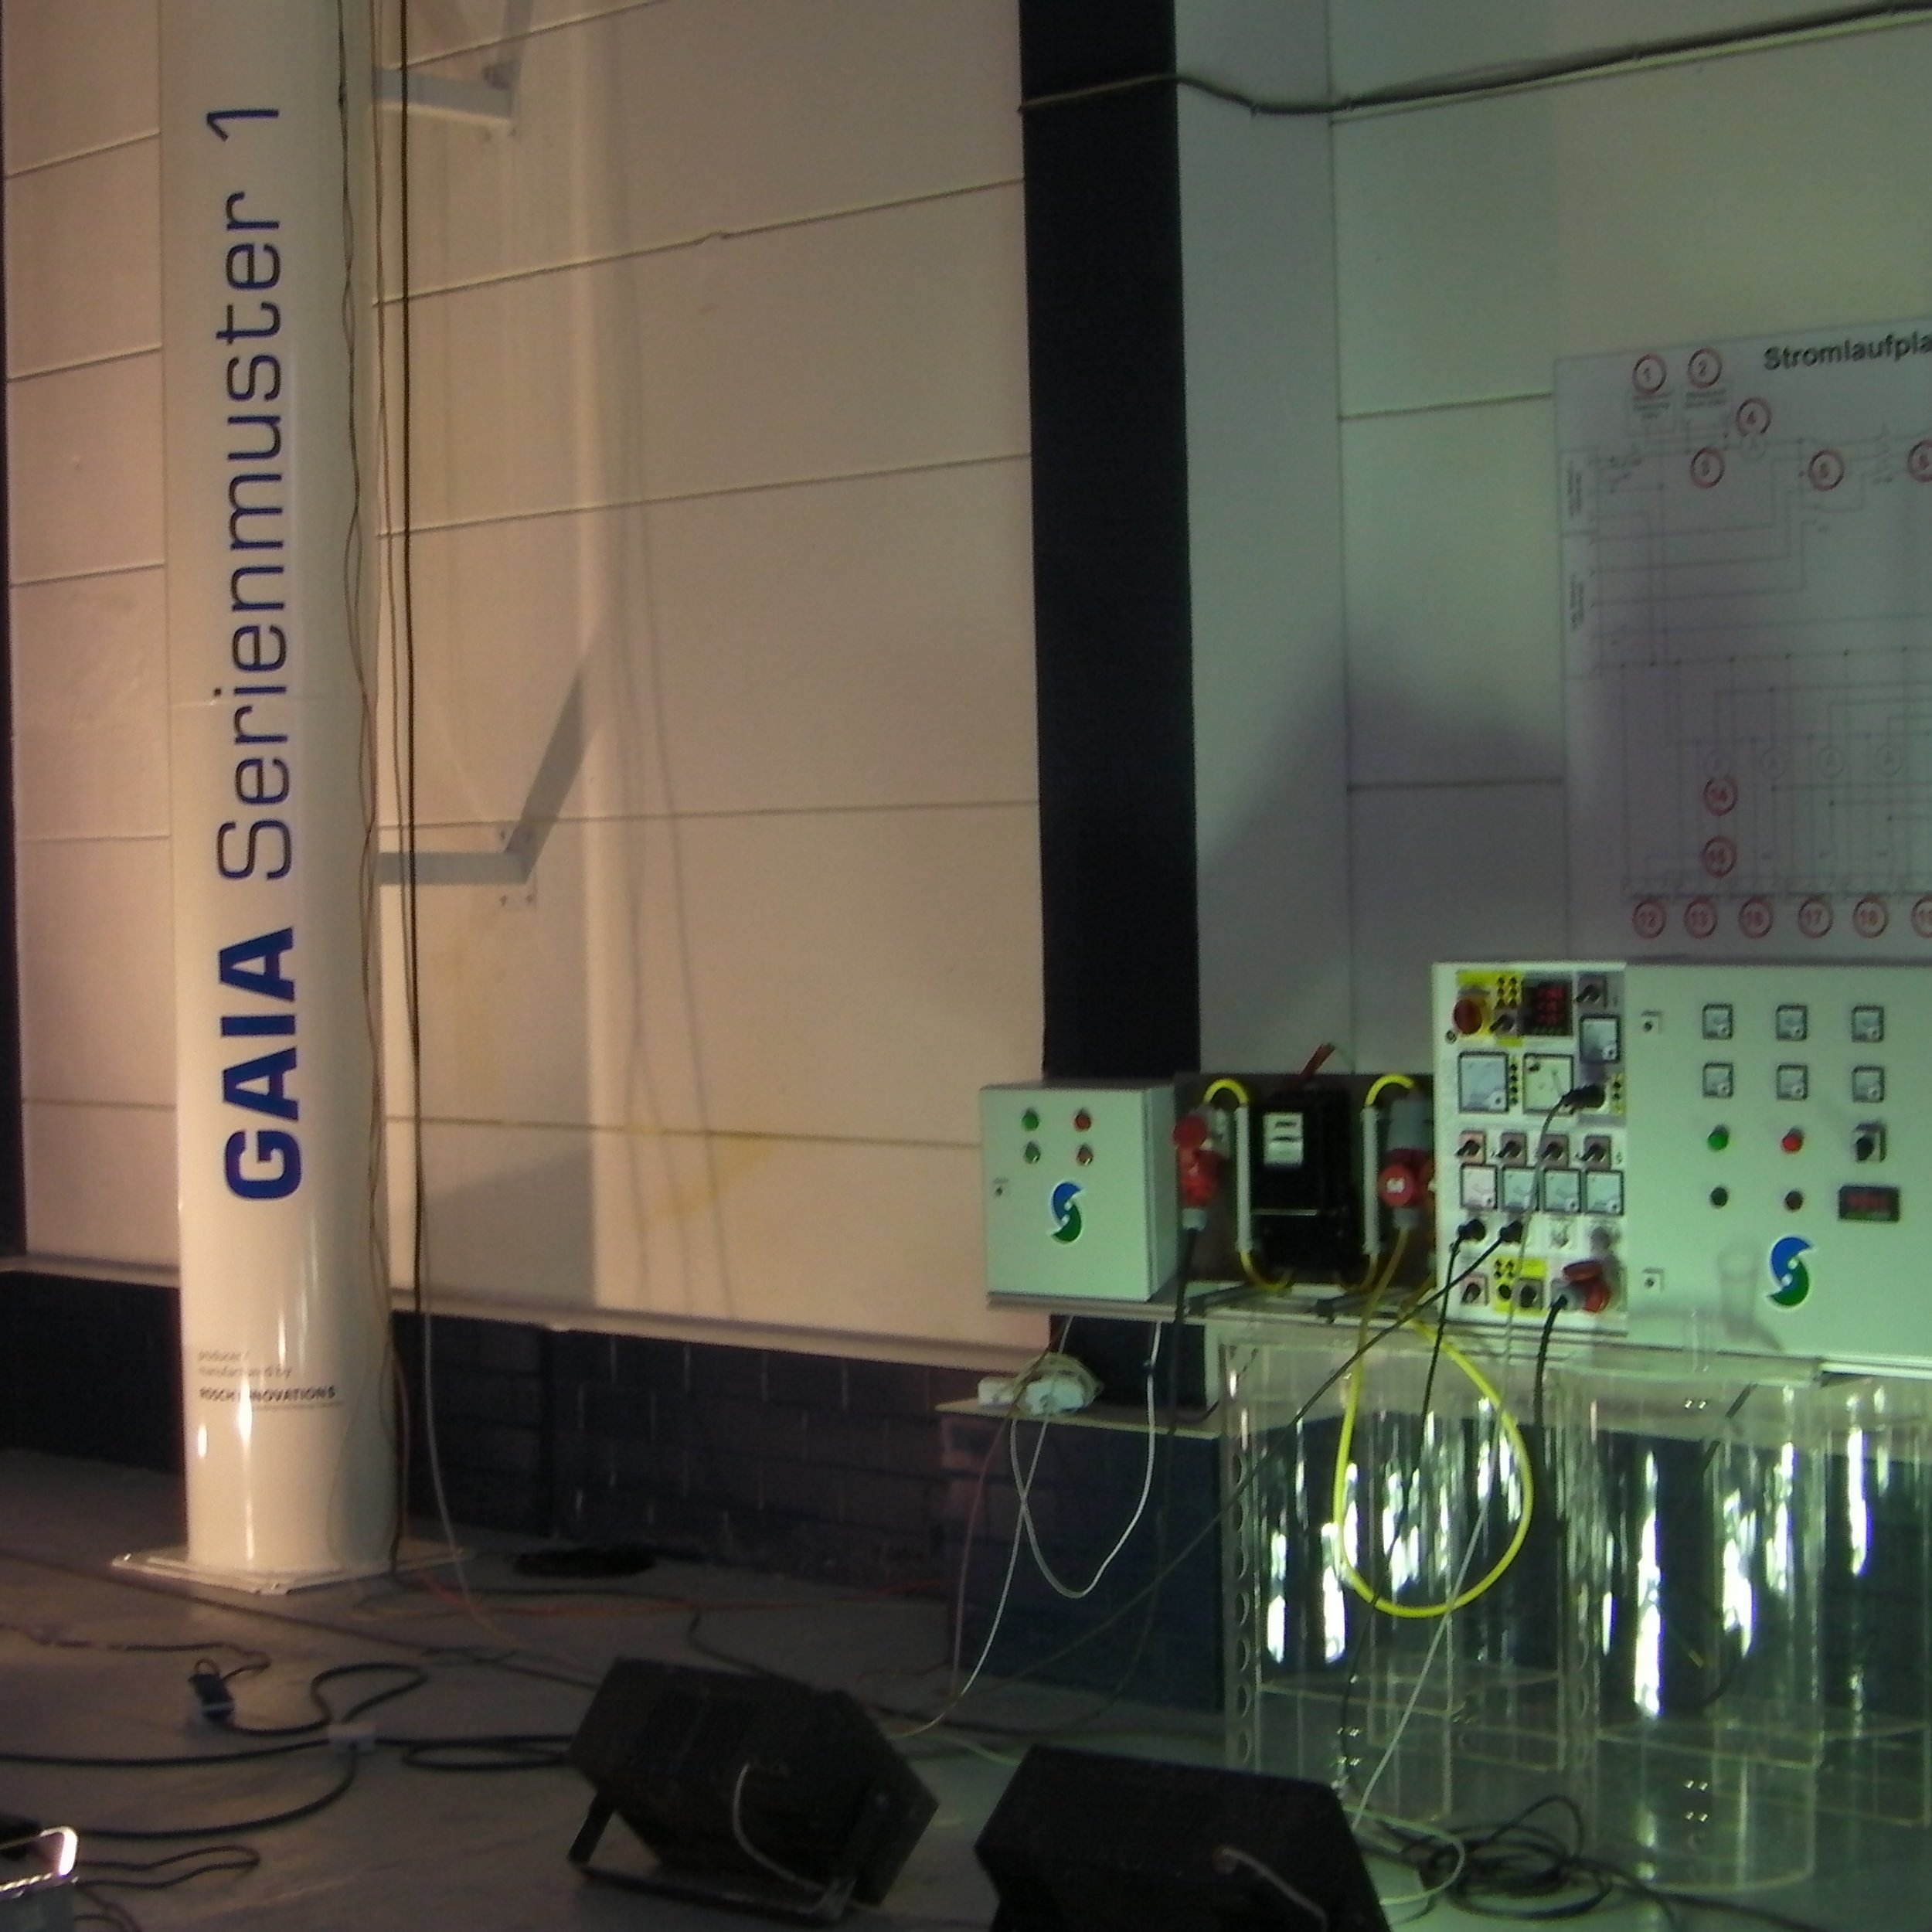 Livestream demo 5 kW April 2015, Cologne